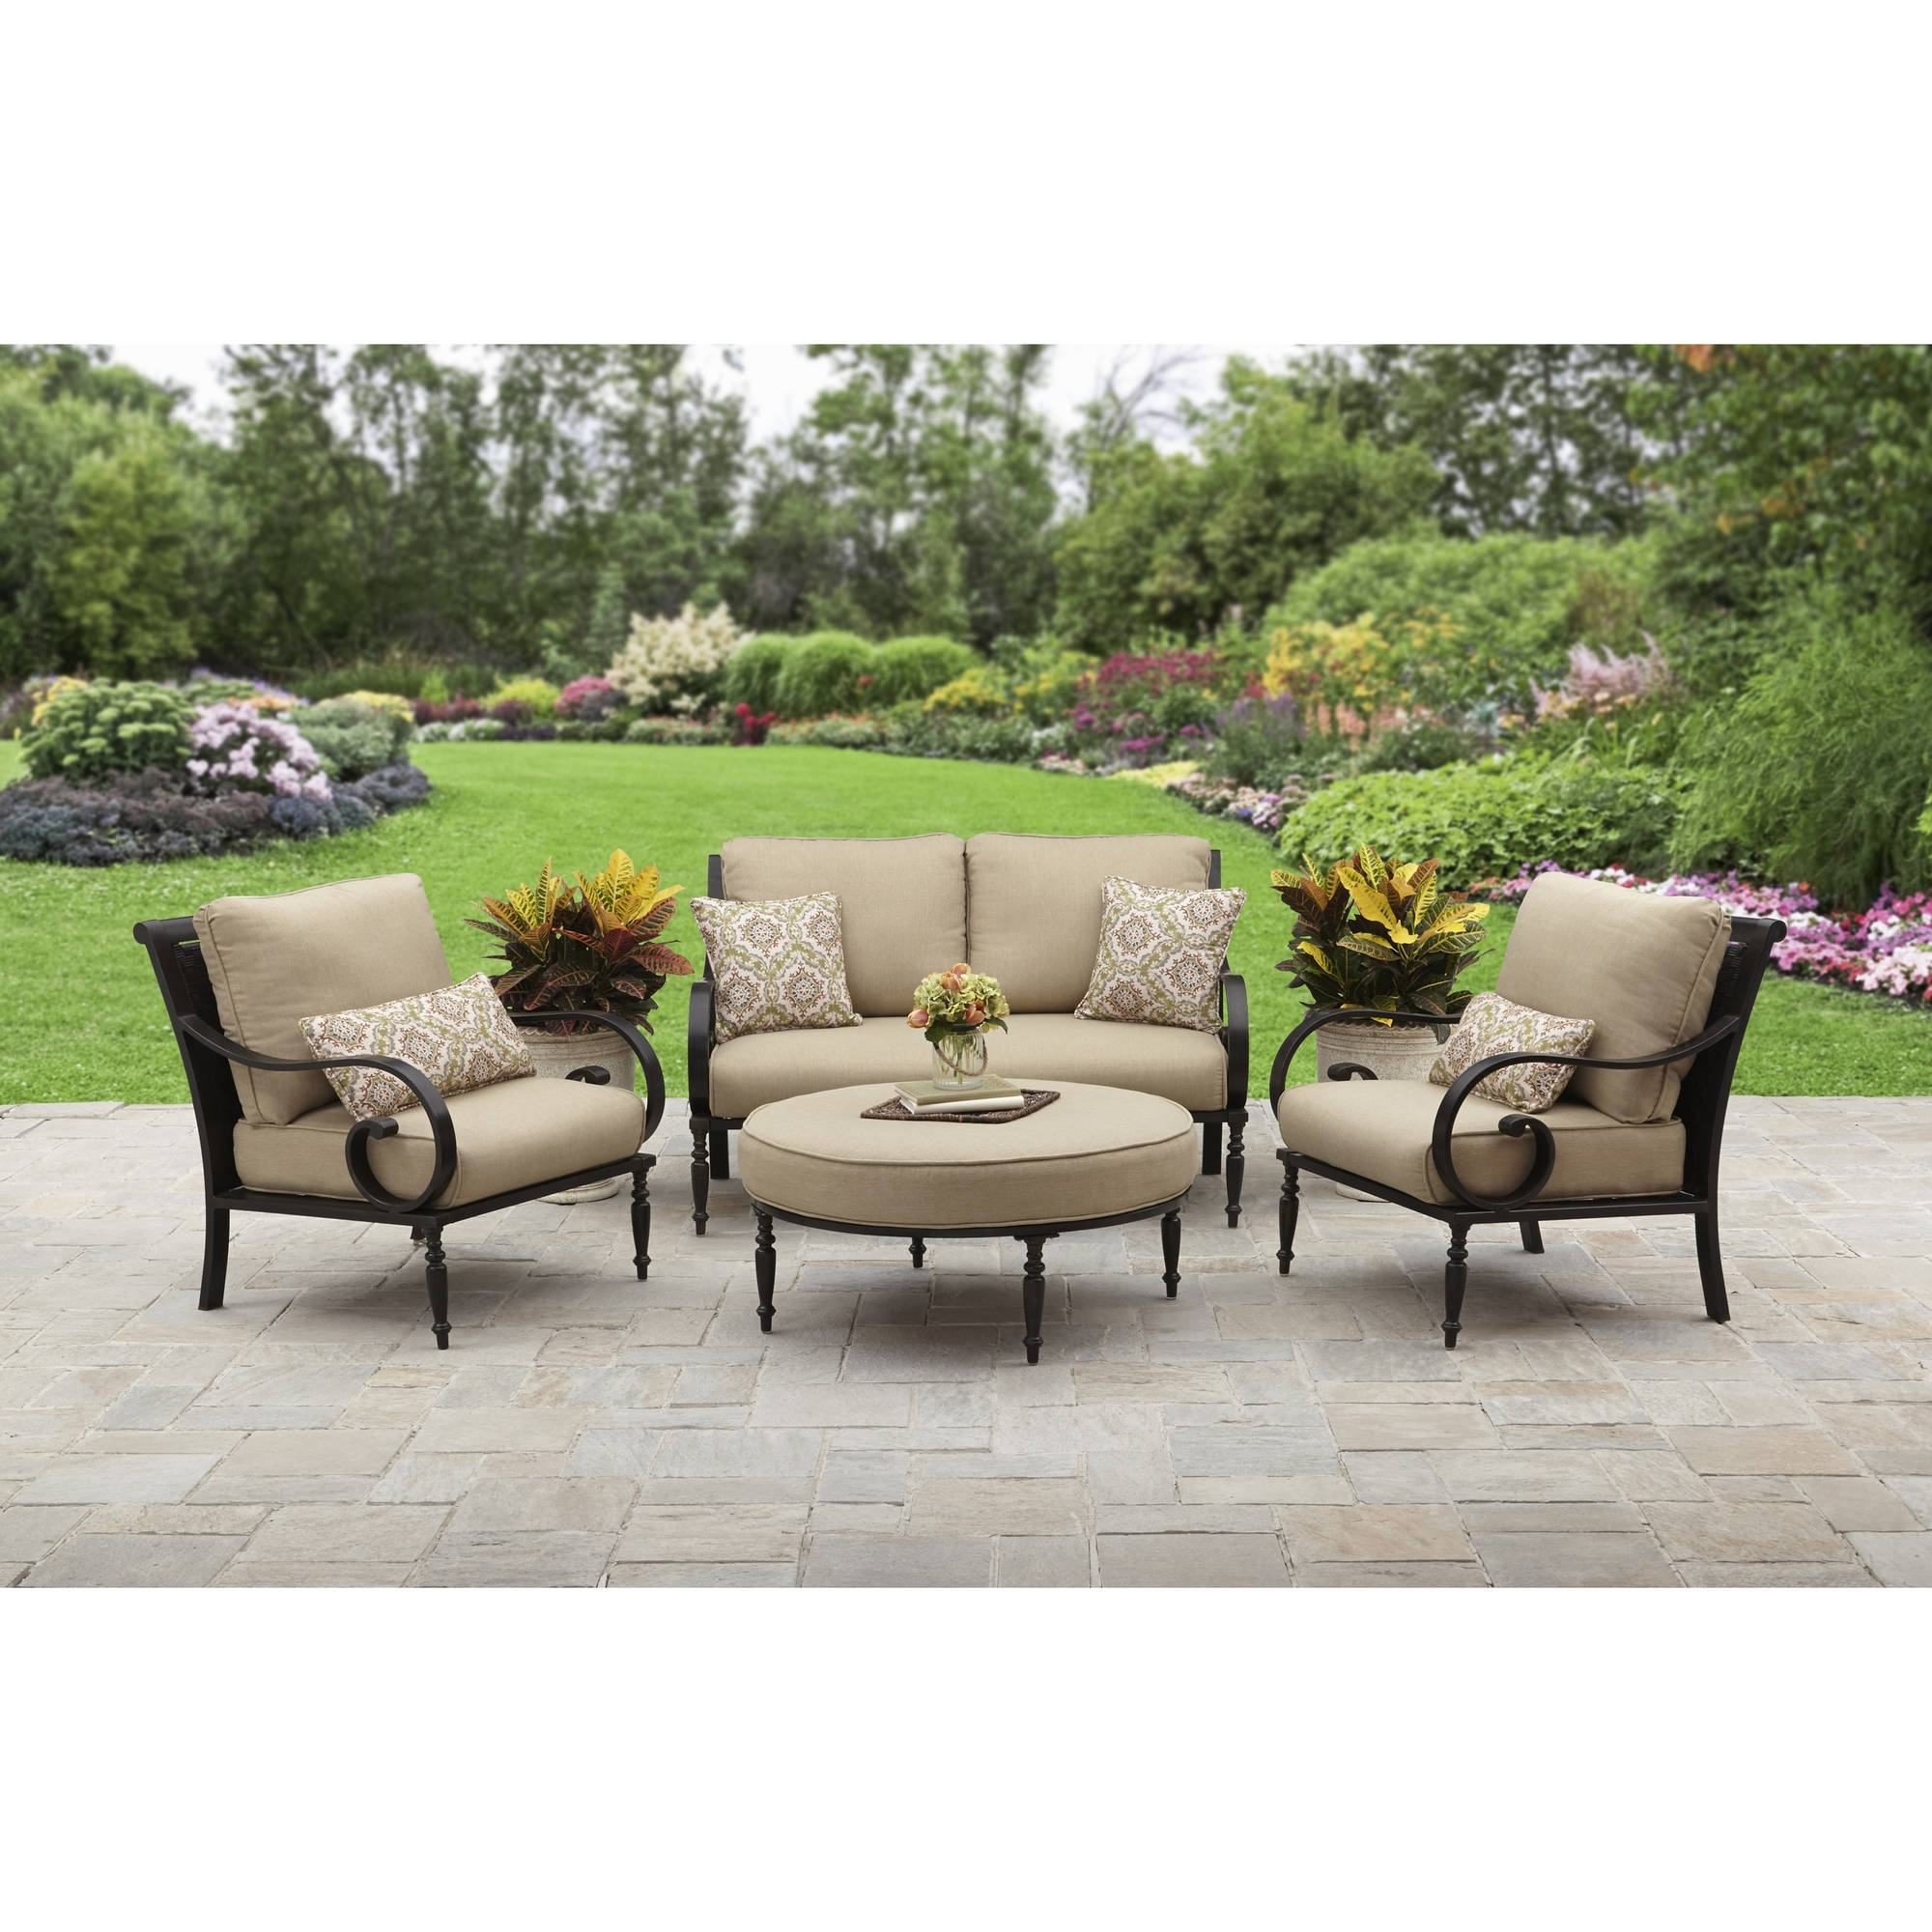 Better Homes And Gardens Englewood Heights Ii Aluminum 4 Piece Regarding Most Current Dot Patio Conversation Sets (View 3 of 15)